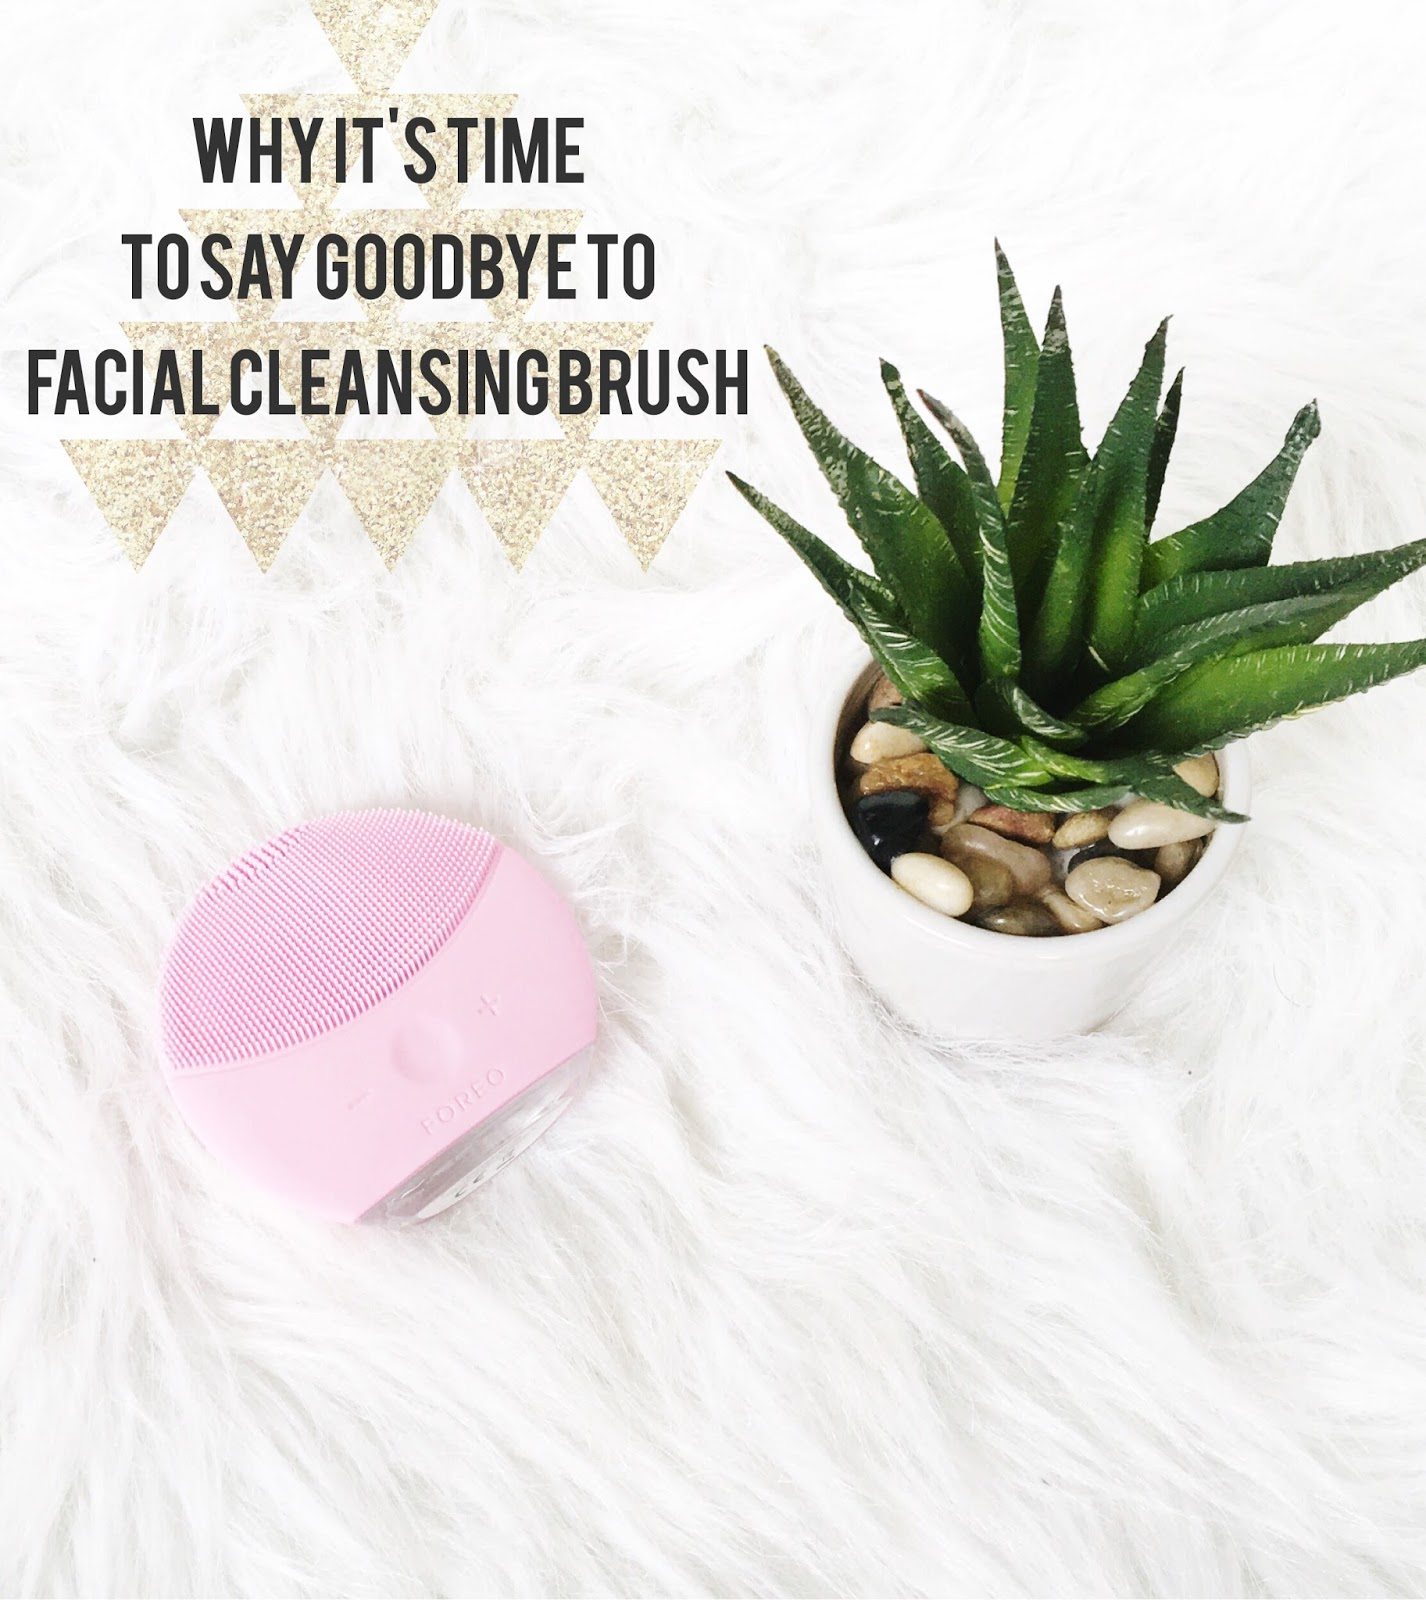 Why It's Time To Say Goodbye To Your Facial Scrub Brush